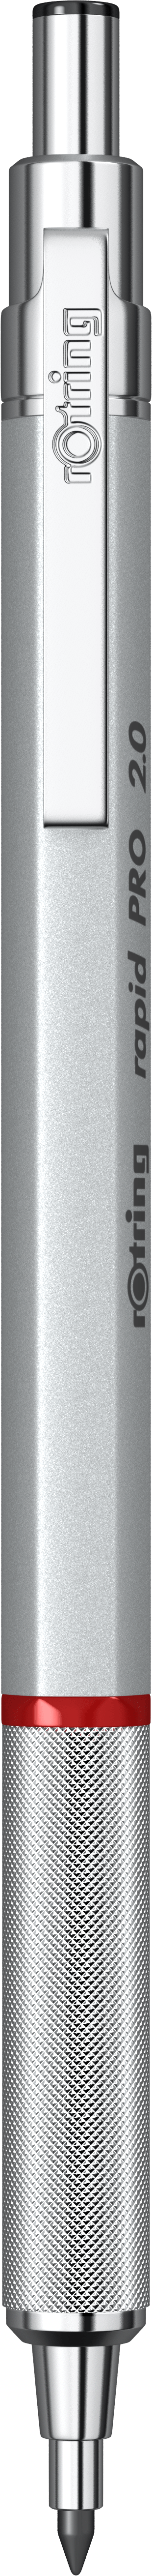 Silver Creion Mecanic 2.0 - Rotring 1